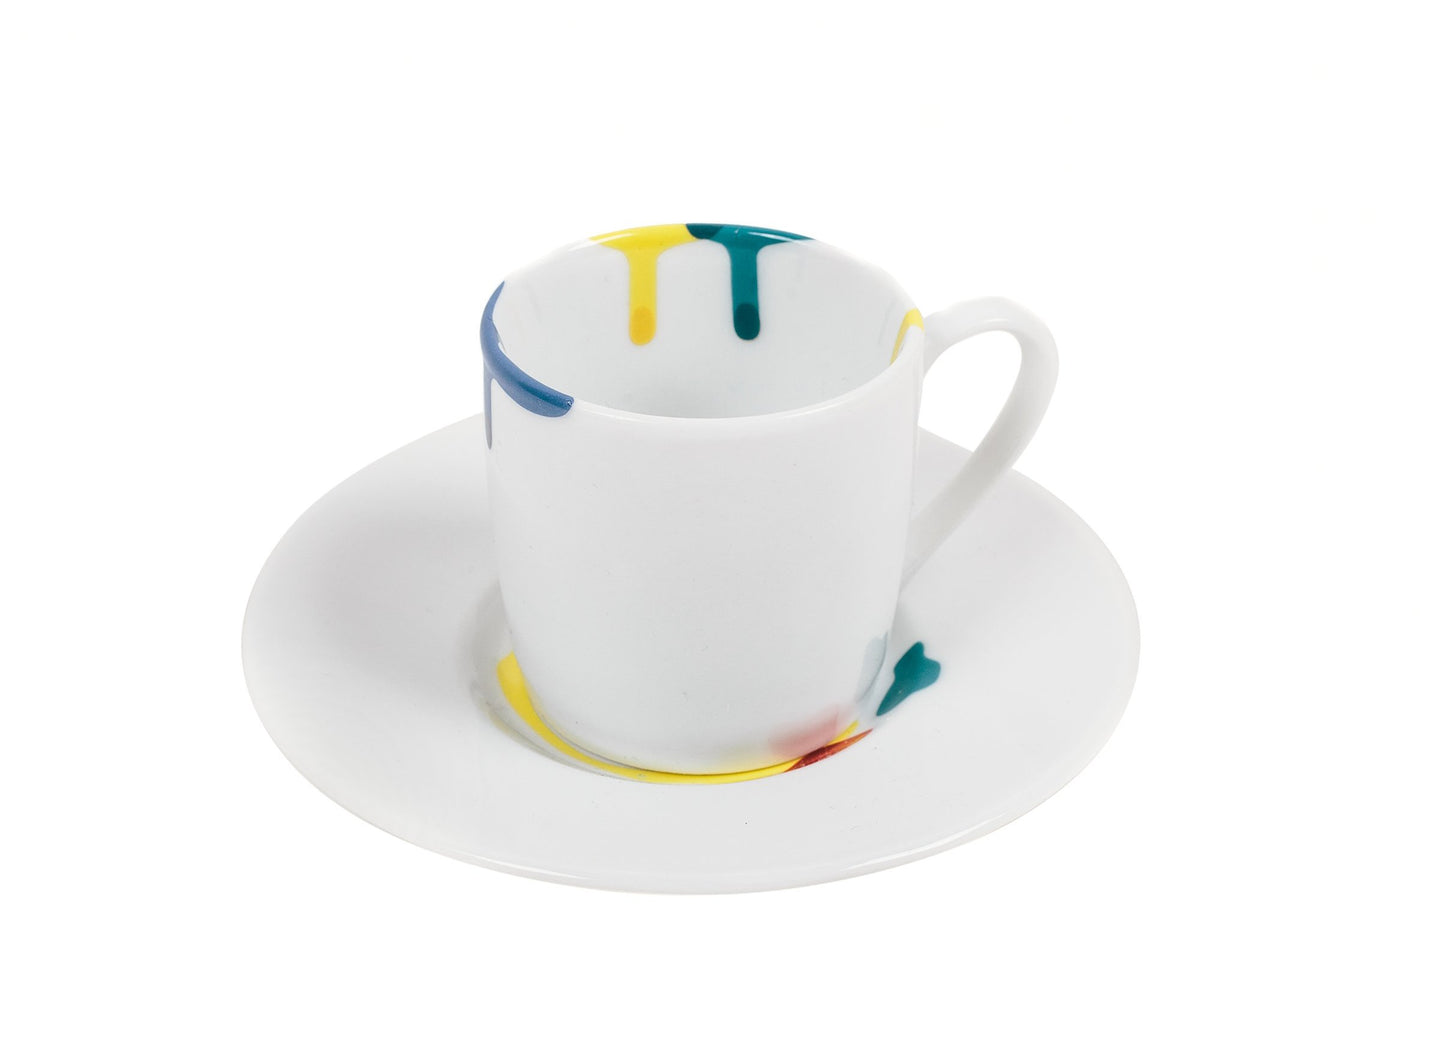 The Tate Modern Artist Espresso Cup and Saucer